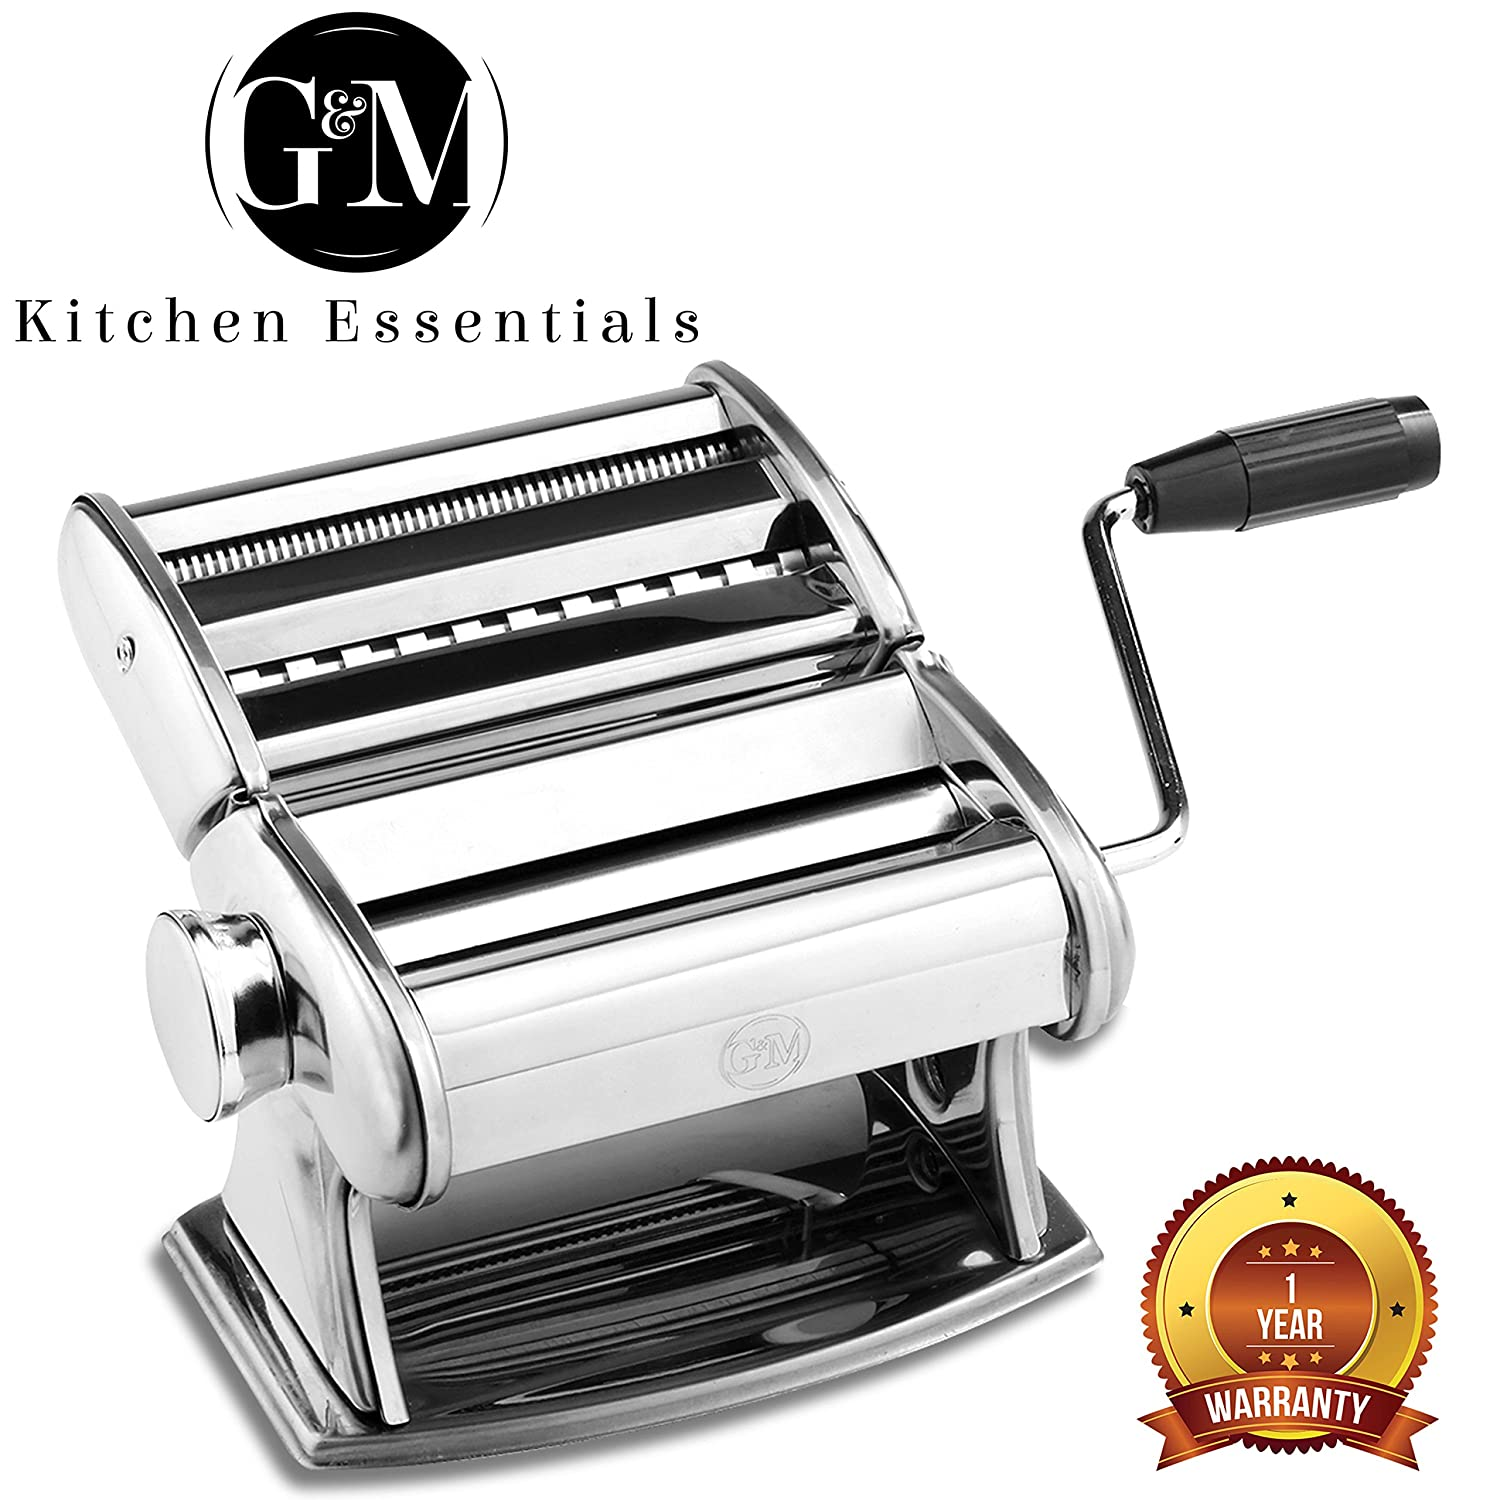 Stainless Steel Pasta Maker Set – Manual Pasta Roller with Hand Crank by G&M Kitchen Essentials COMINHKPR93247